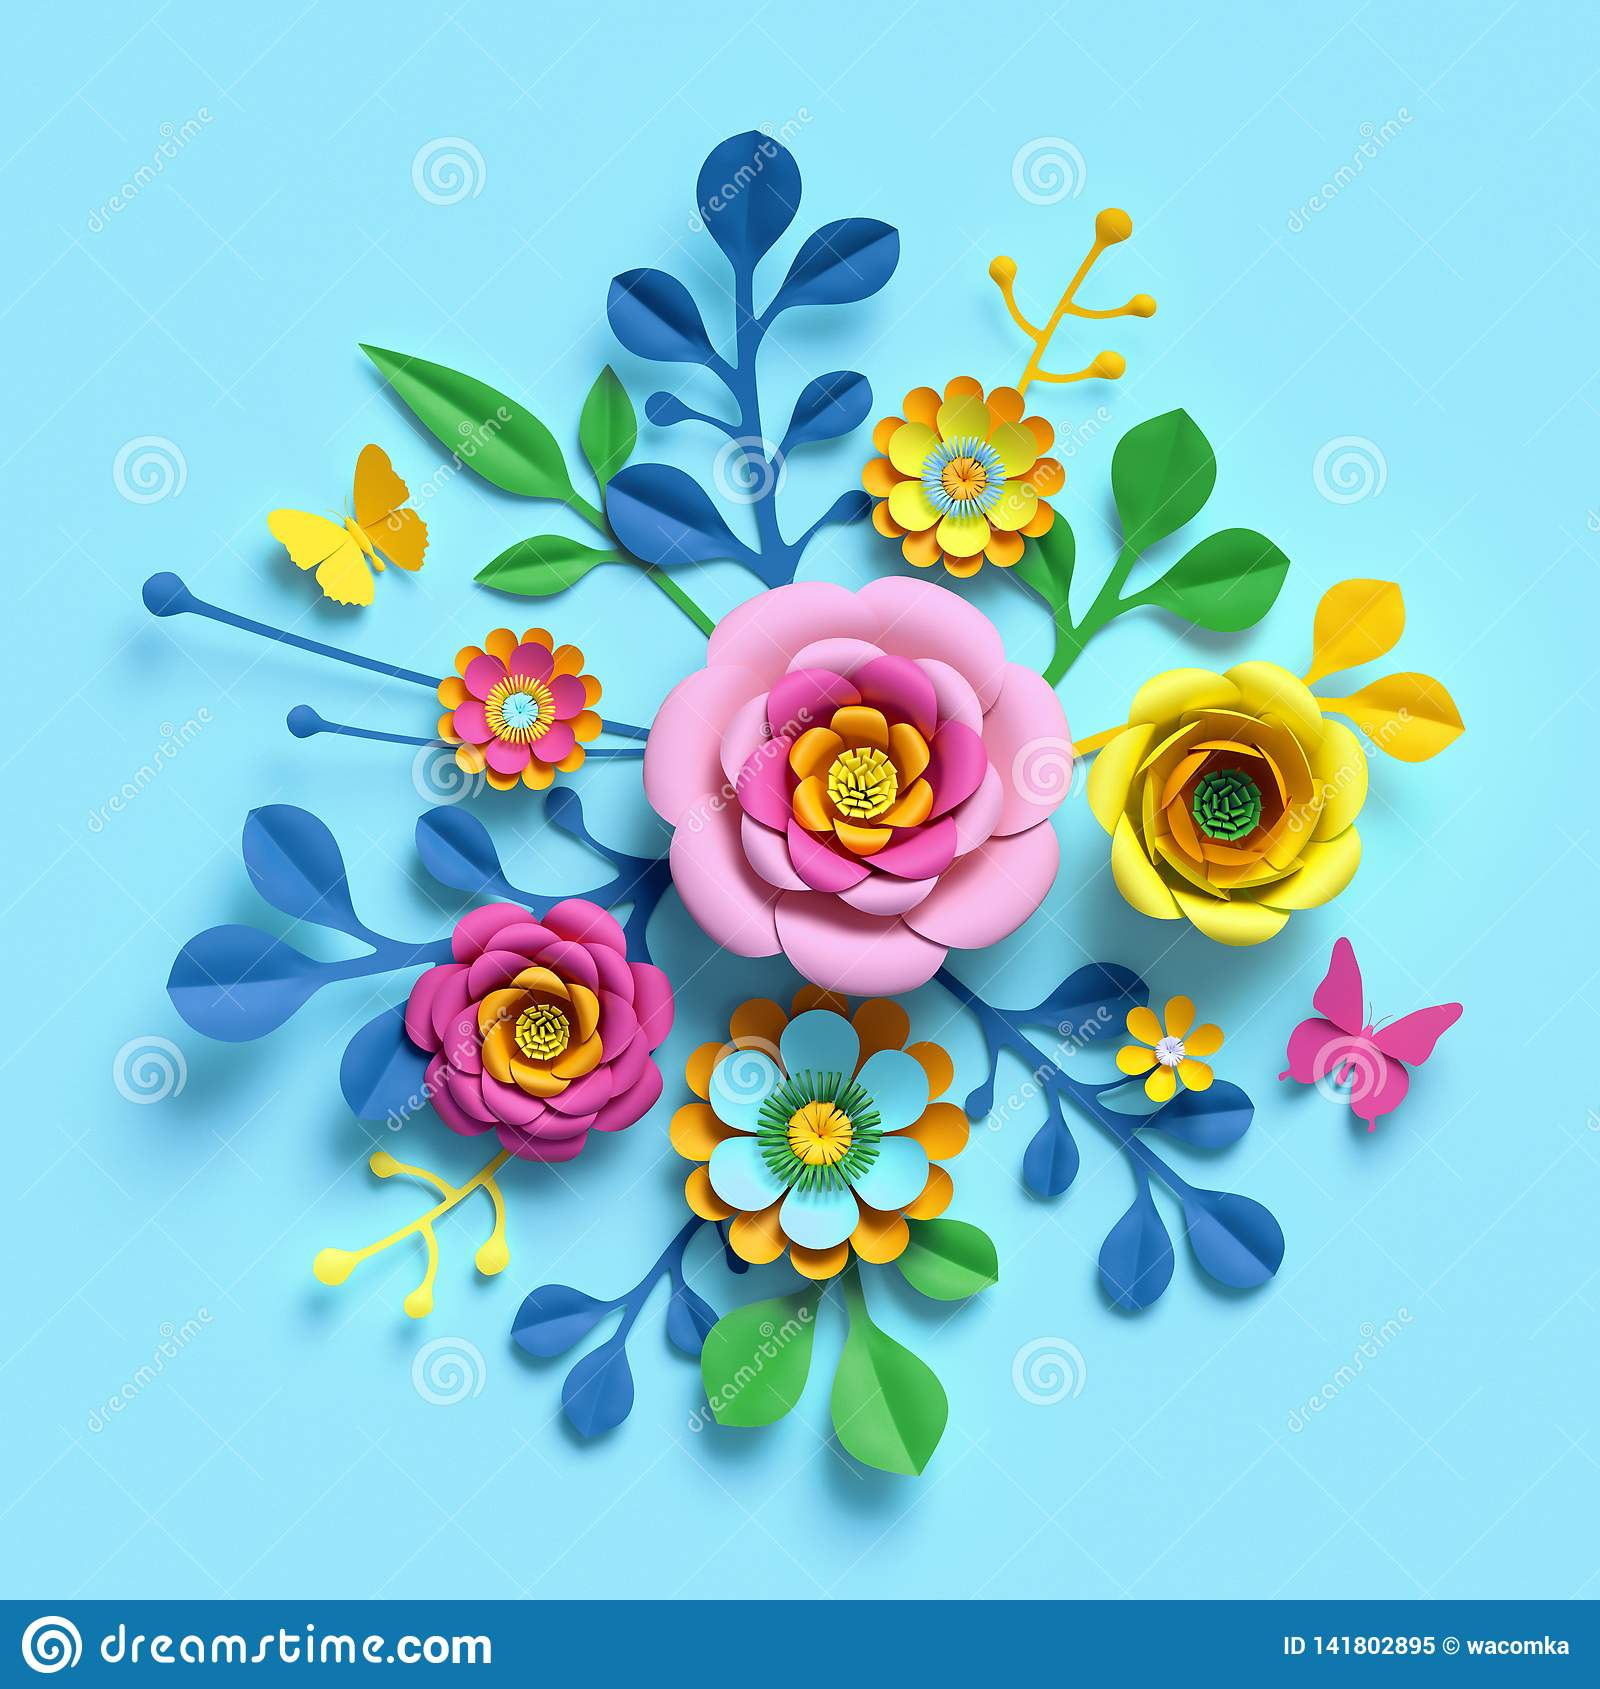 3d render, craft paper flowers, floral bouquet, botanical arrangement, candy colors, nature clip art isolated on blue background